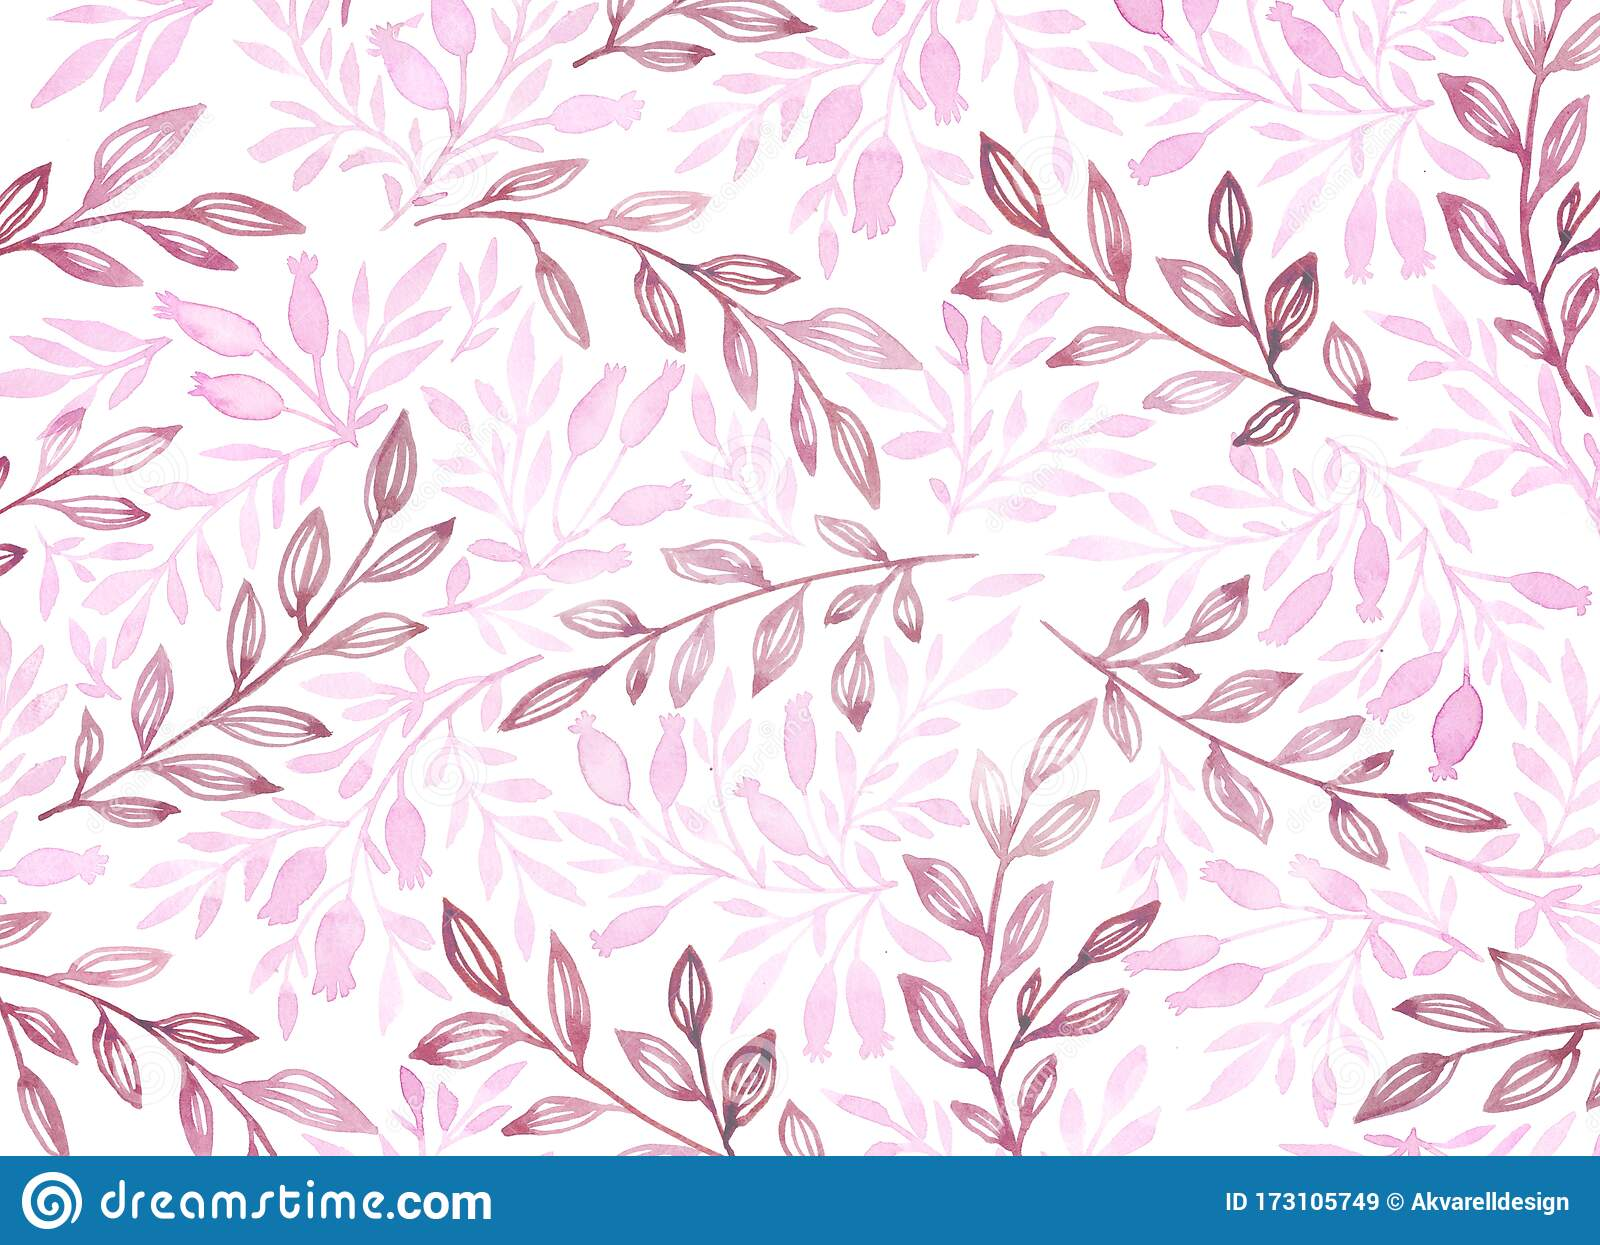 watercolor floral background branches in pastel purple colours vintage background hand painted botanical illustration stock illustration illustration of branch purple 173105749 dreamstime com